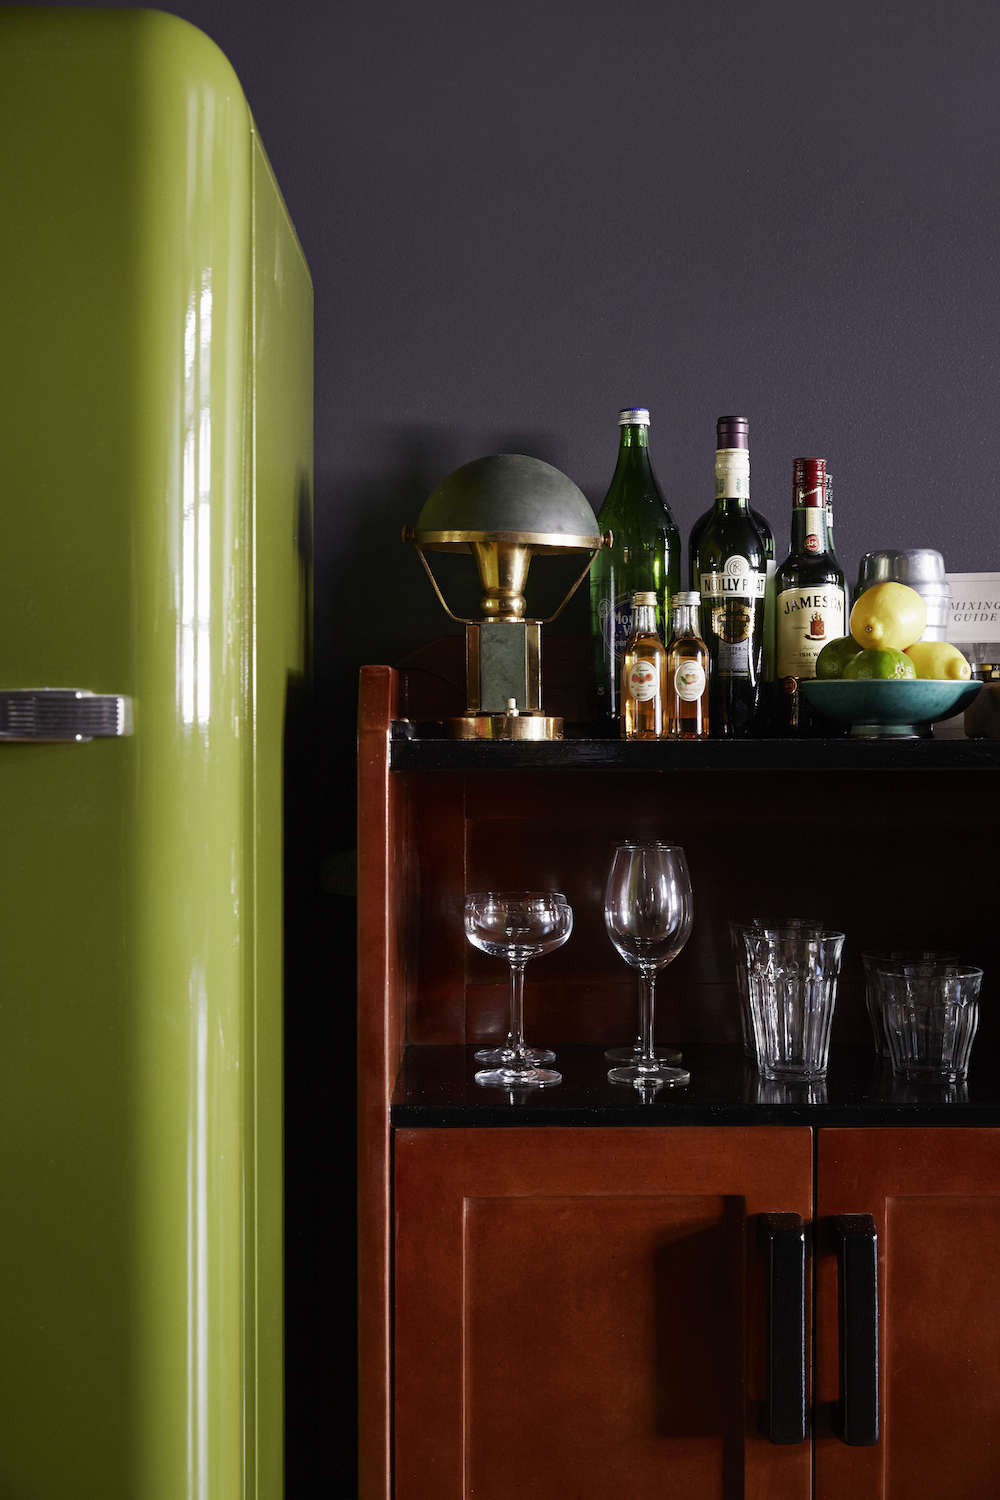 The Smeg refrigerator in a custom green color is stocked with fresh cocktail essentials.